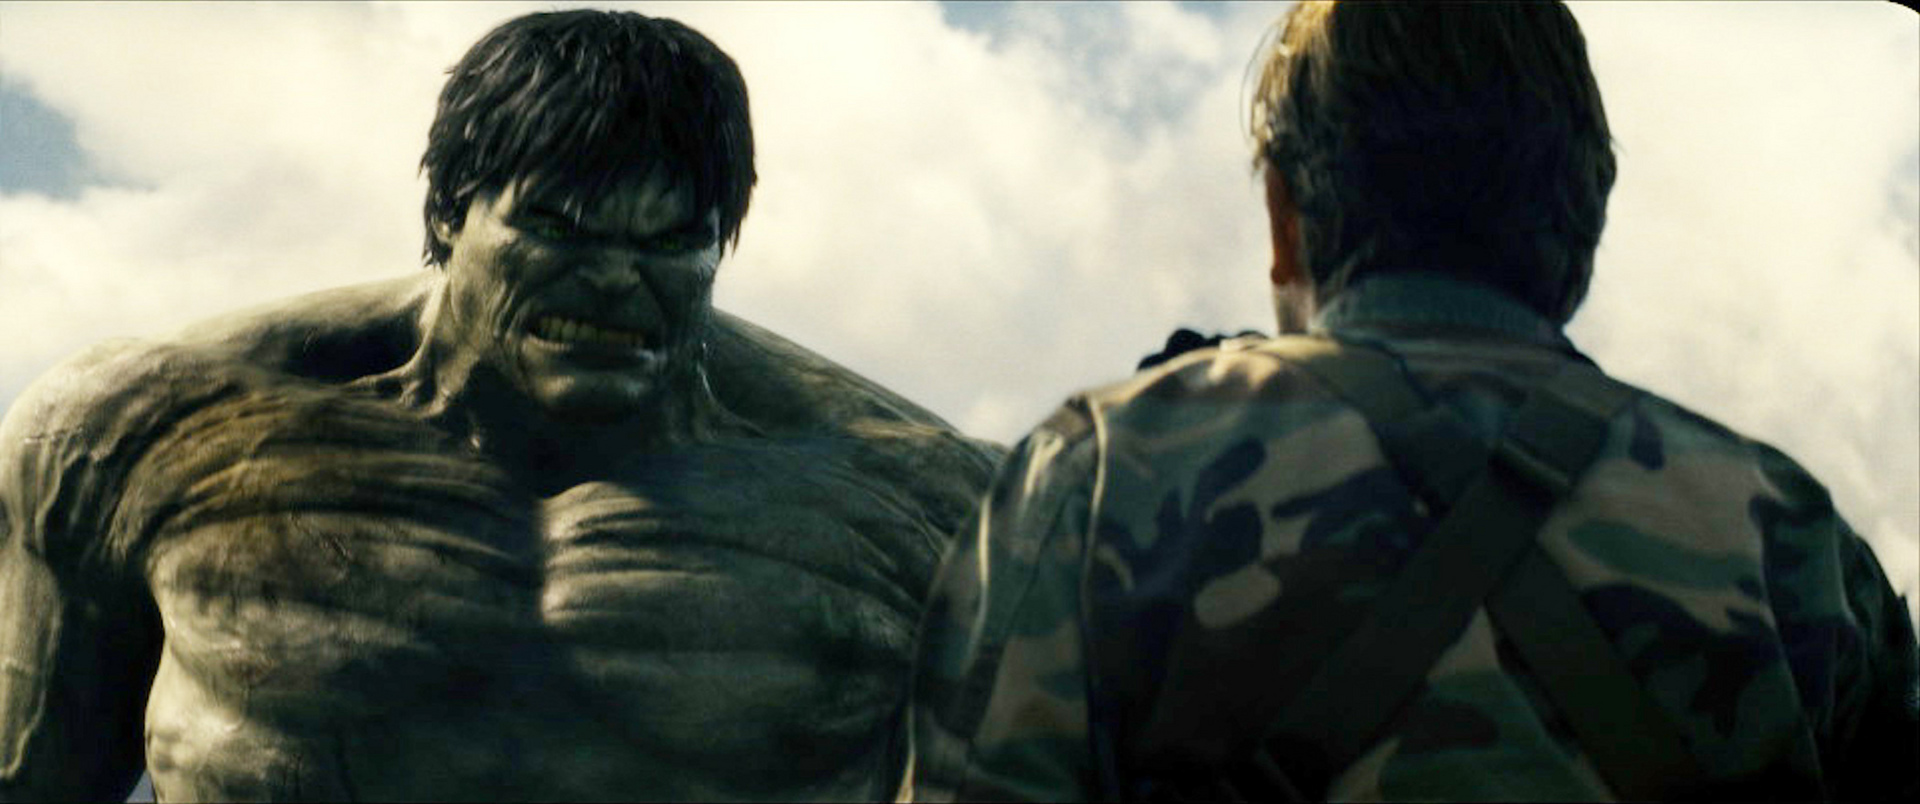 incredible hulk Marvel's incredible hulk has been smashing to his heart's content for over 55 years -- but when did he start eating people.